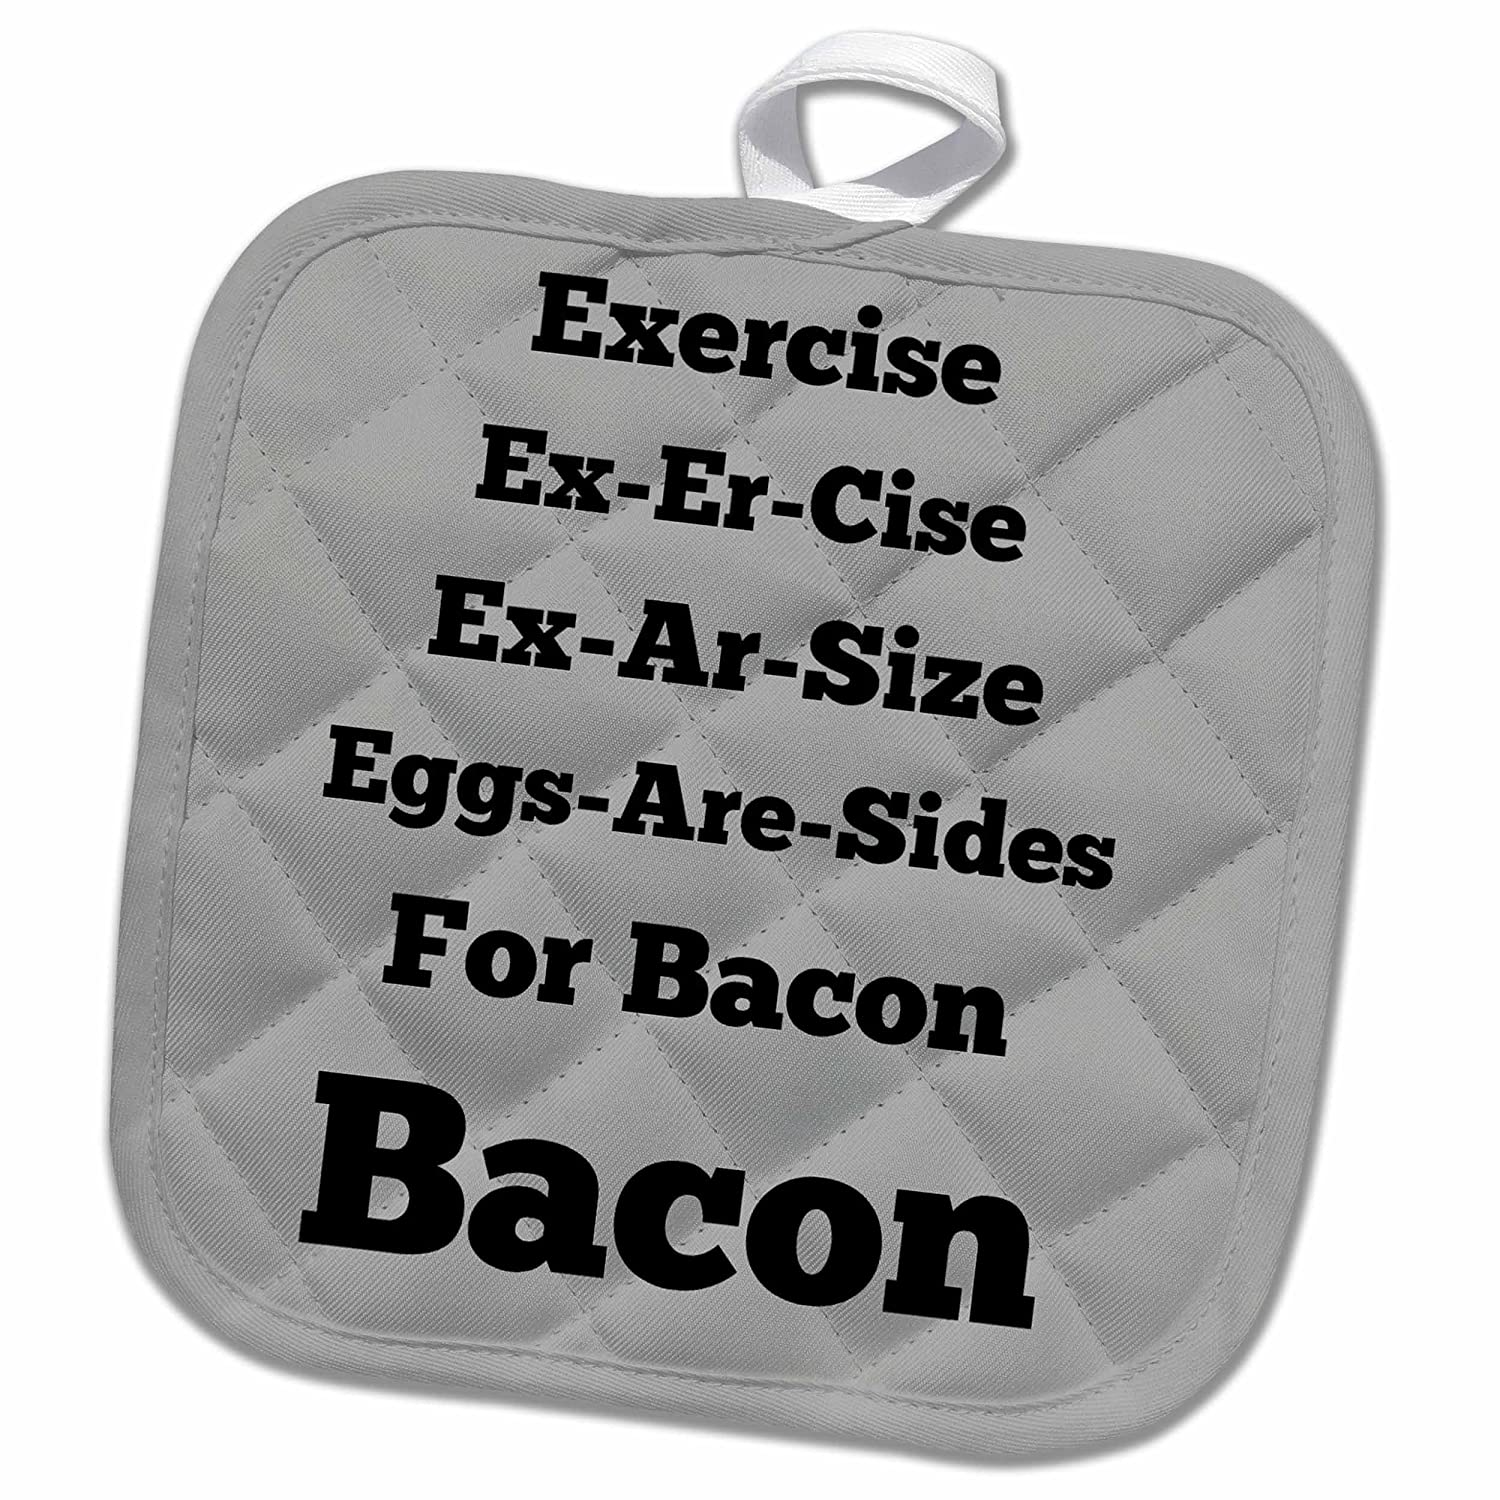 3D Rose Eggs are Sides for Bacon Gray Black Pot Holder 8 x 8 Multiple Color